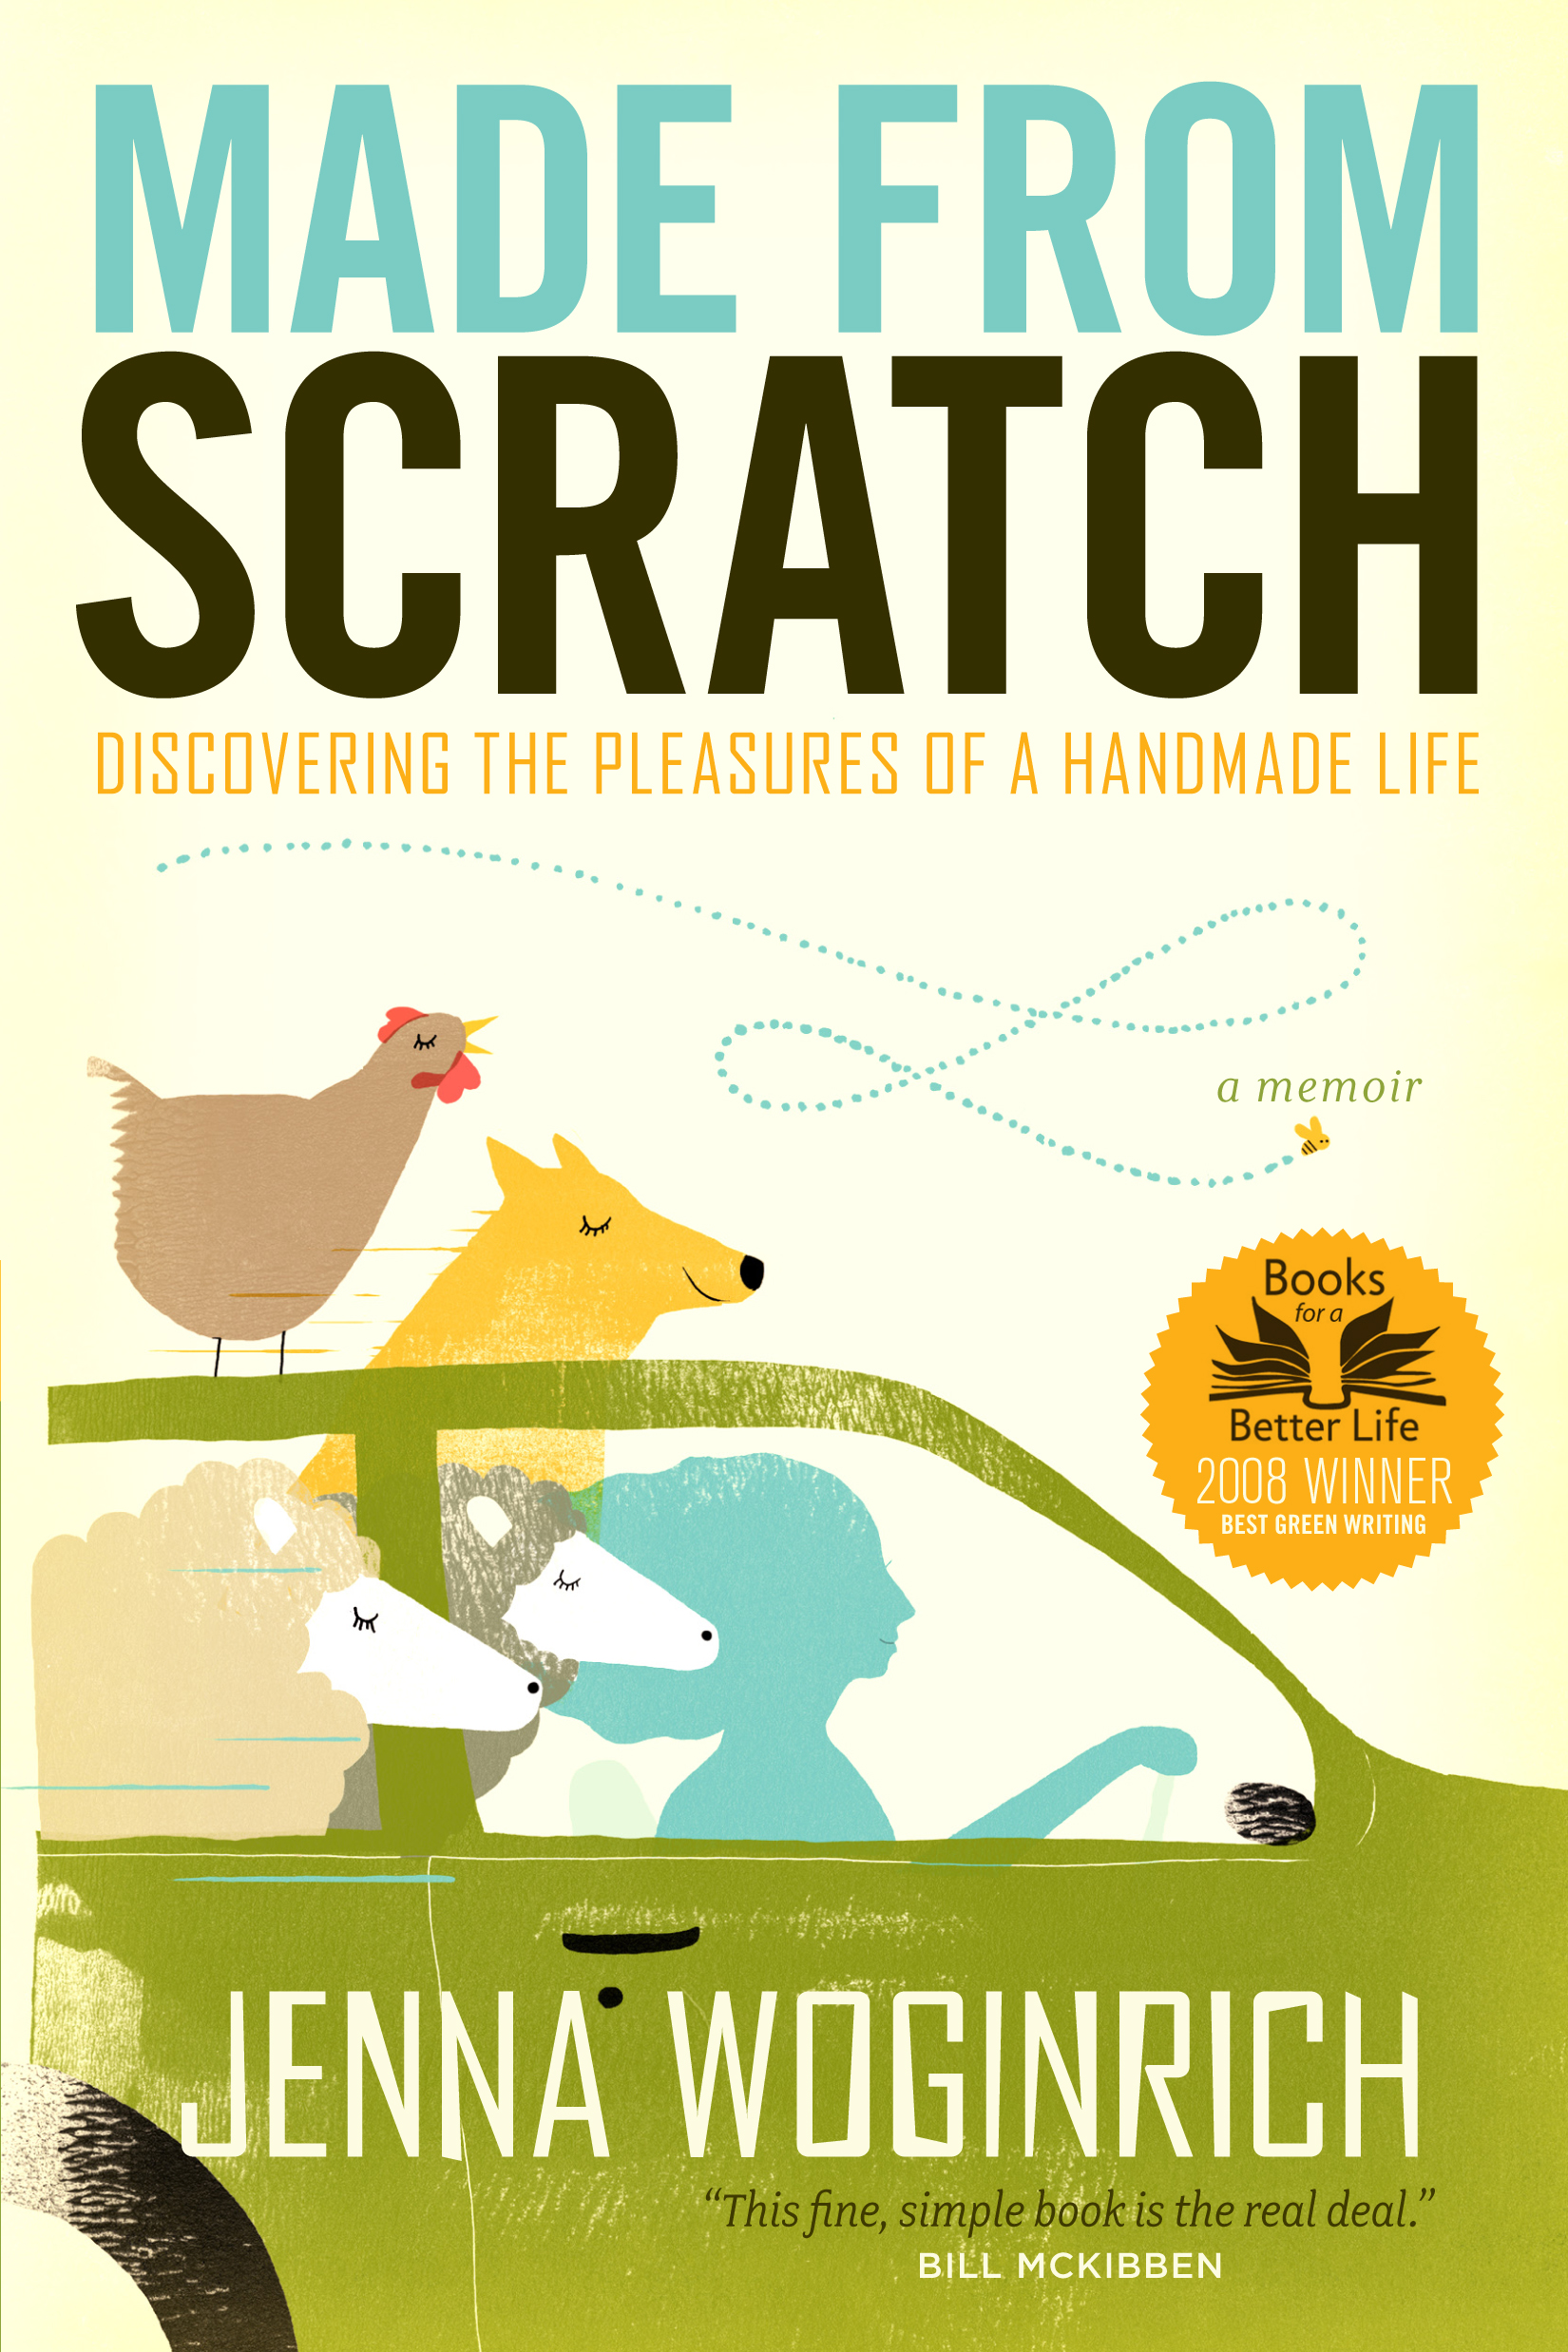 Made from Scratch Discovering the Pleasures of a Handmade Life - Jenna Woginrich